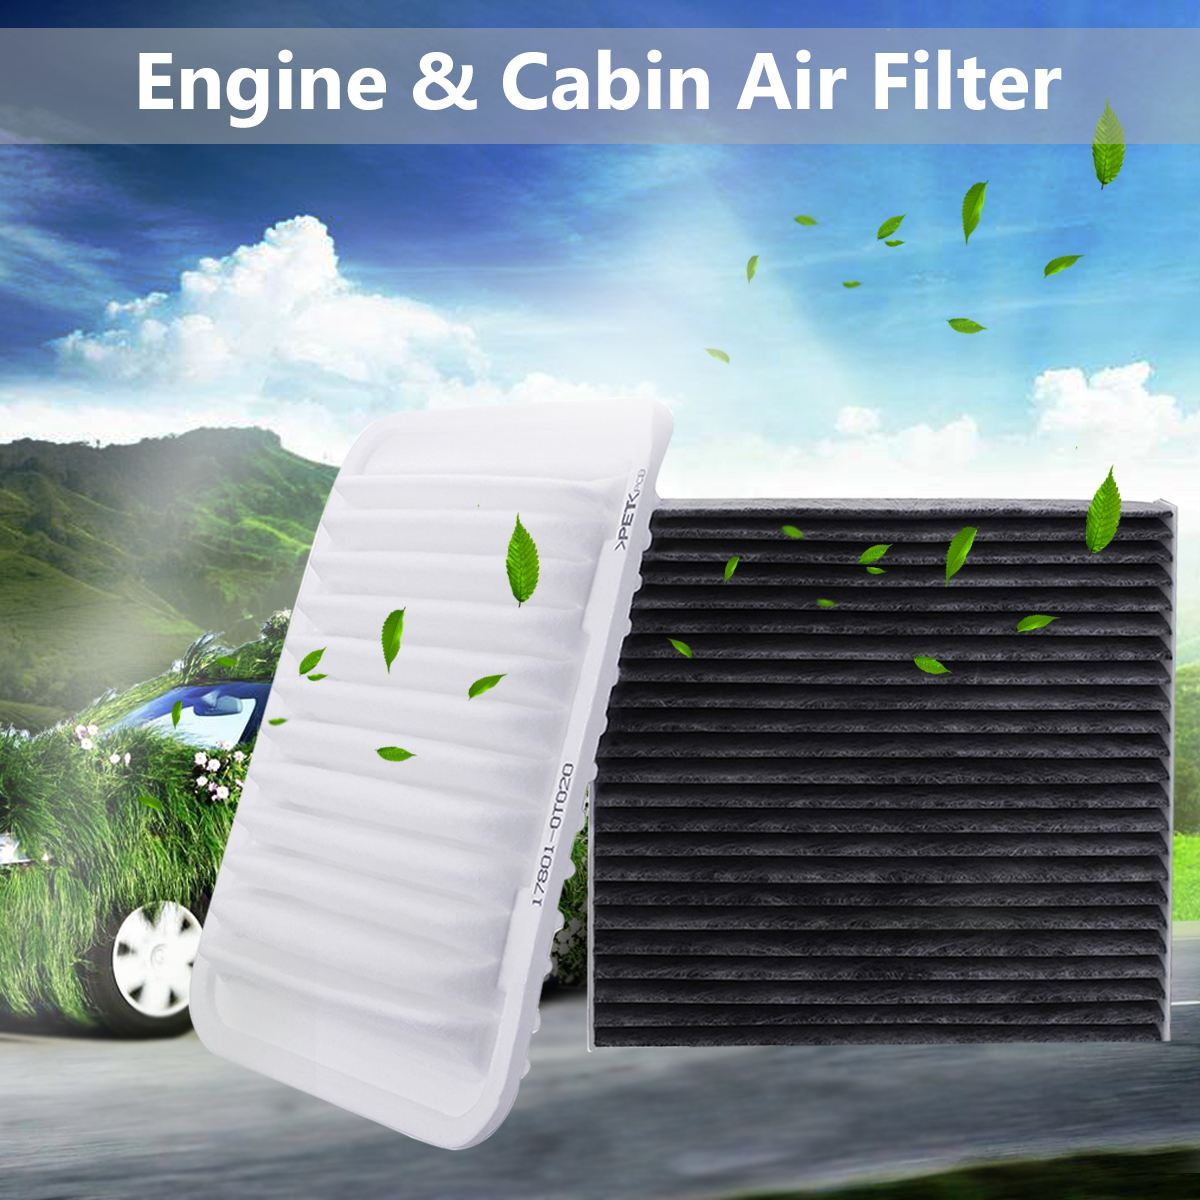 2Pcs Engine Air Filter&Cabin Air Filter For Toyota Corolla Yaris Matrix 2008-2018 17801-21050 87139-YZZ0 87139-501002Pcs Engine Air Filter&Cabin Air Filter For Toyota Corolla Yaris Matrix 2008-2018 17801-21050 87139-YZZ0 87139-50100